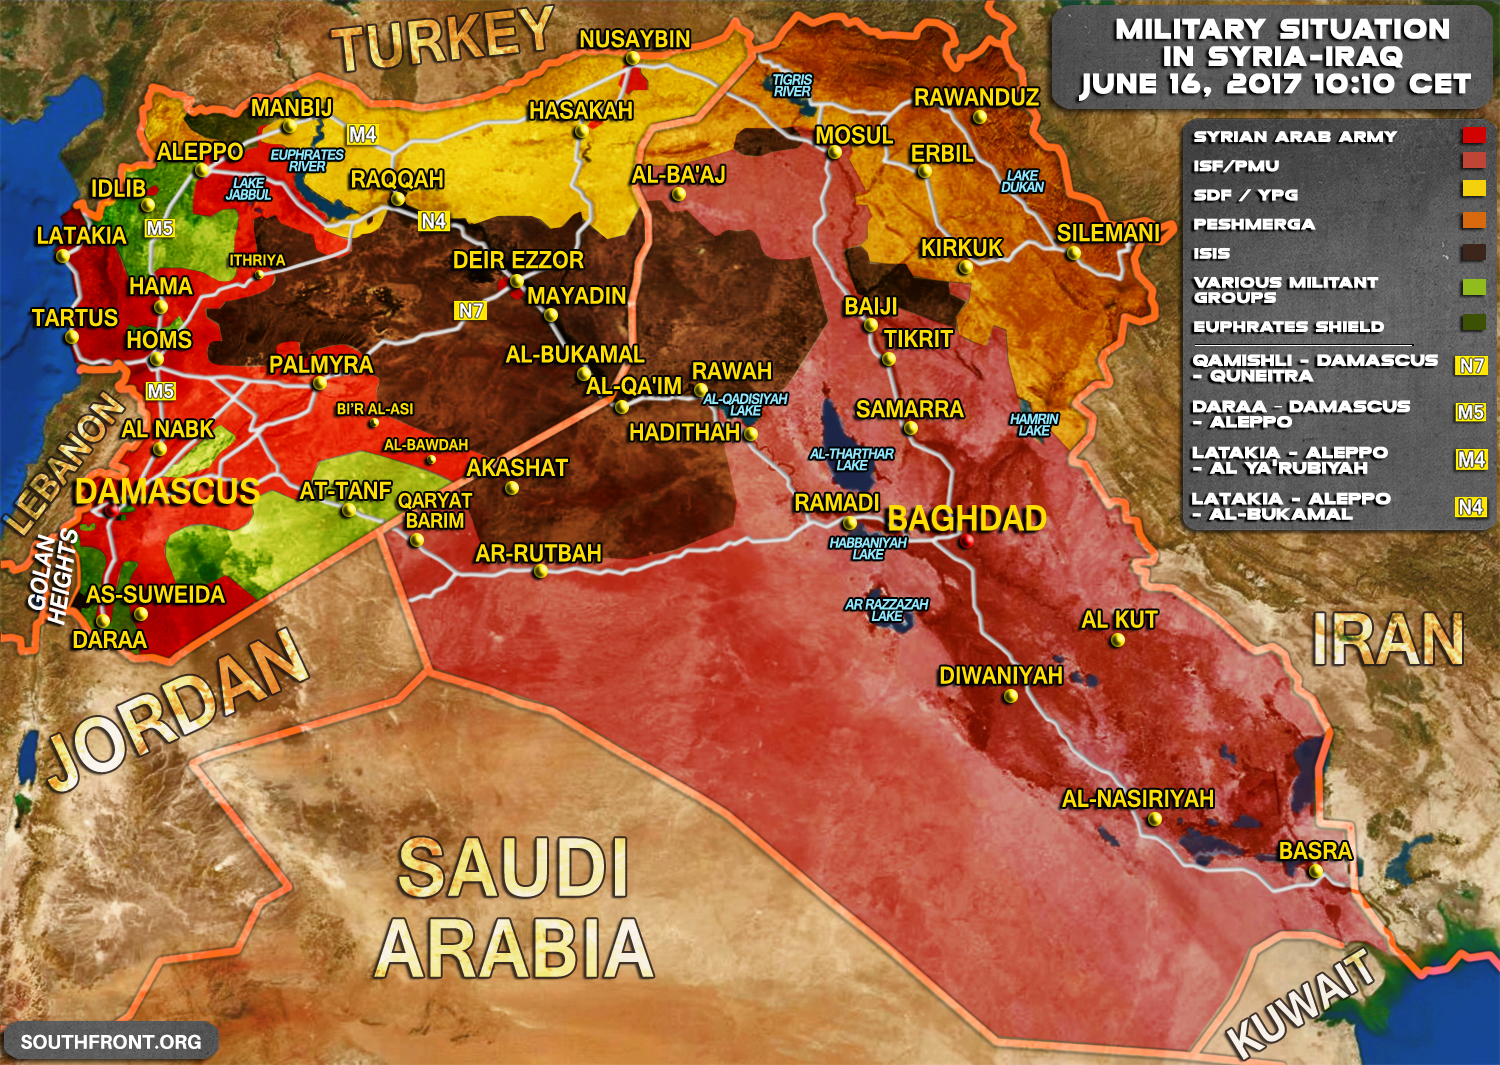 military situation in syria and iraq on june 16 2017 map update